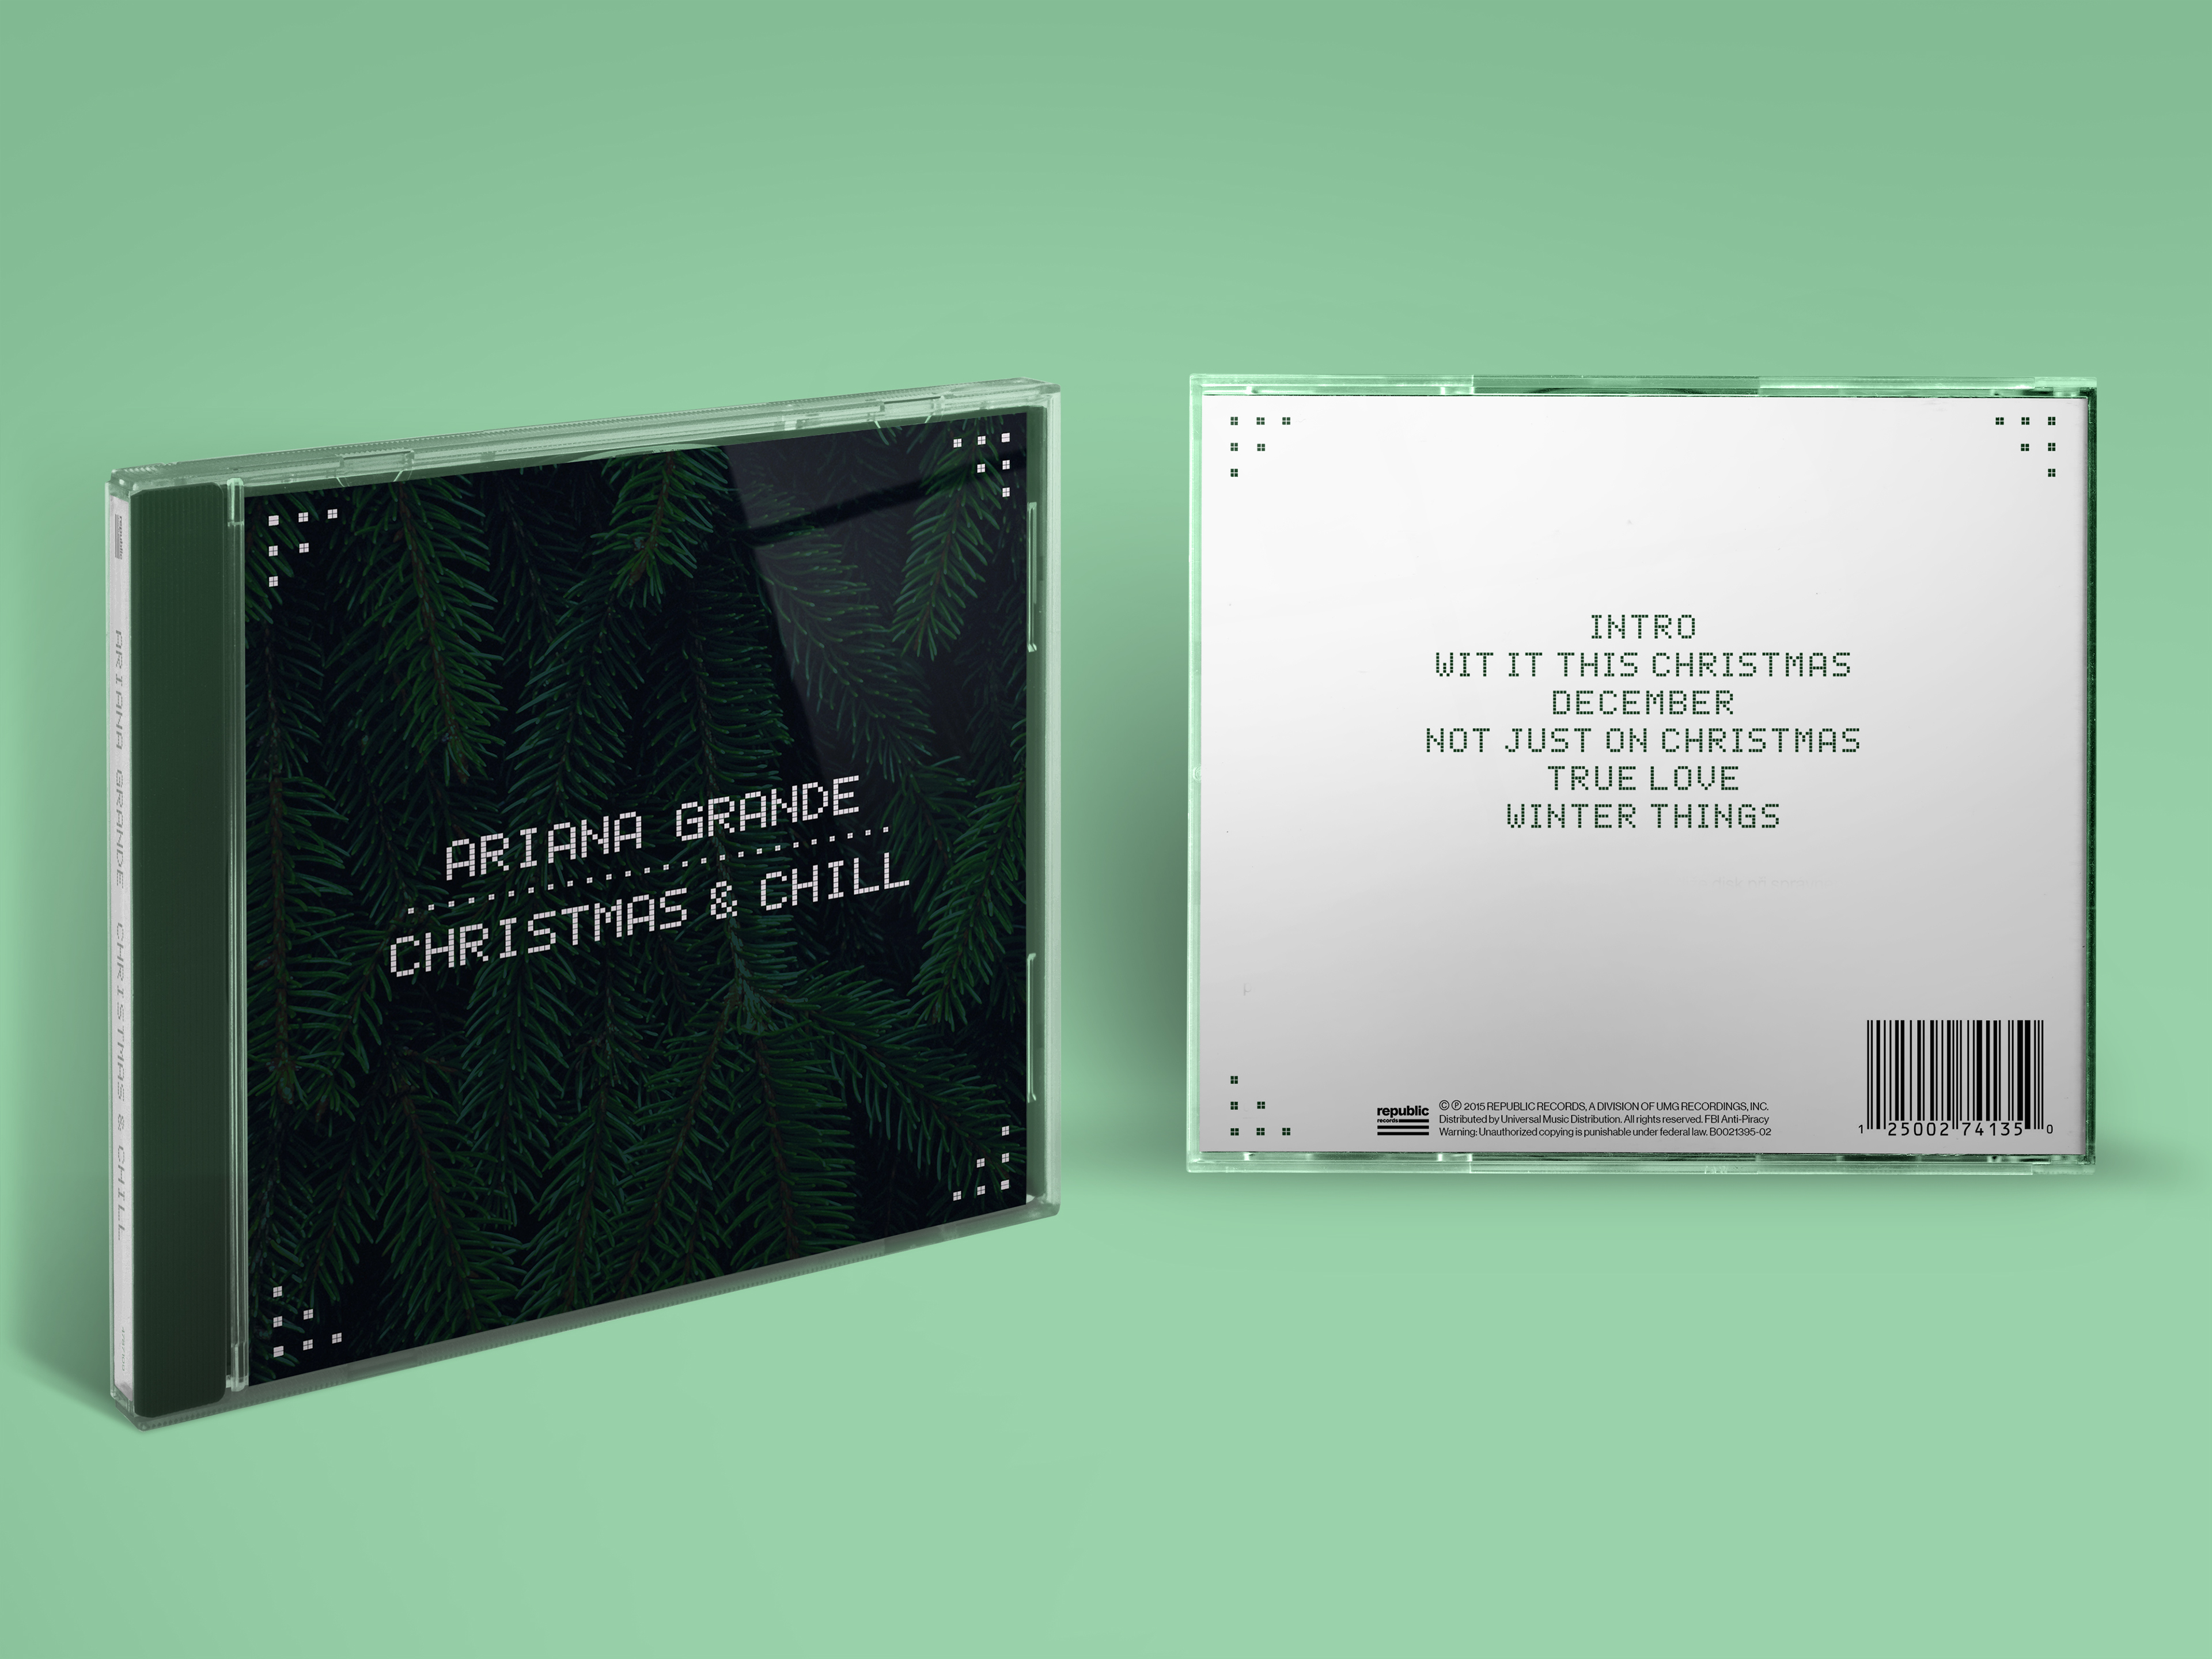 Ariana Grande - Christmas and Chill CD Package Design on Behance